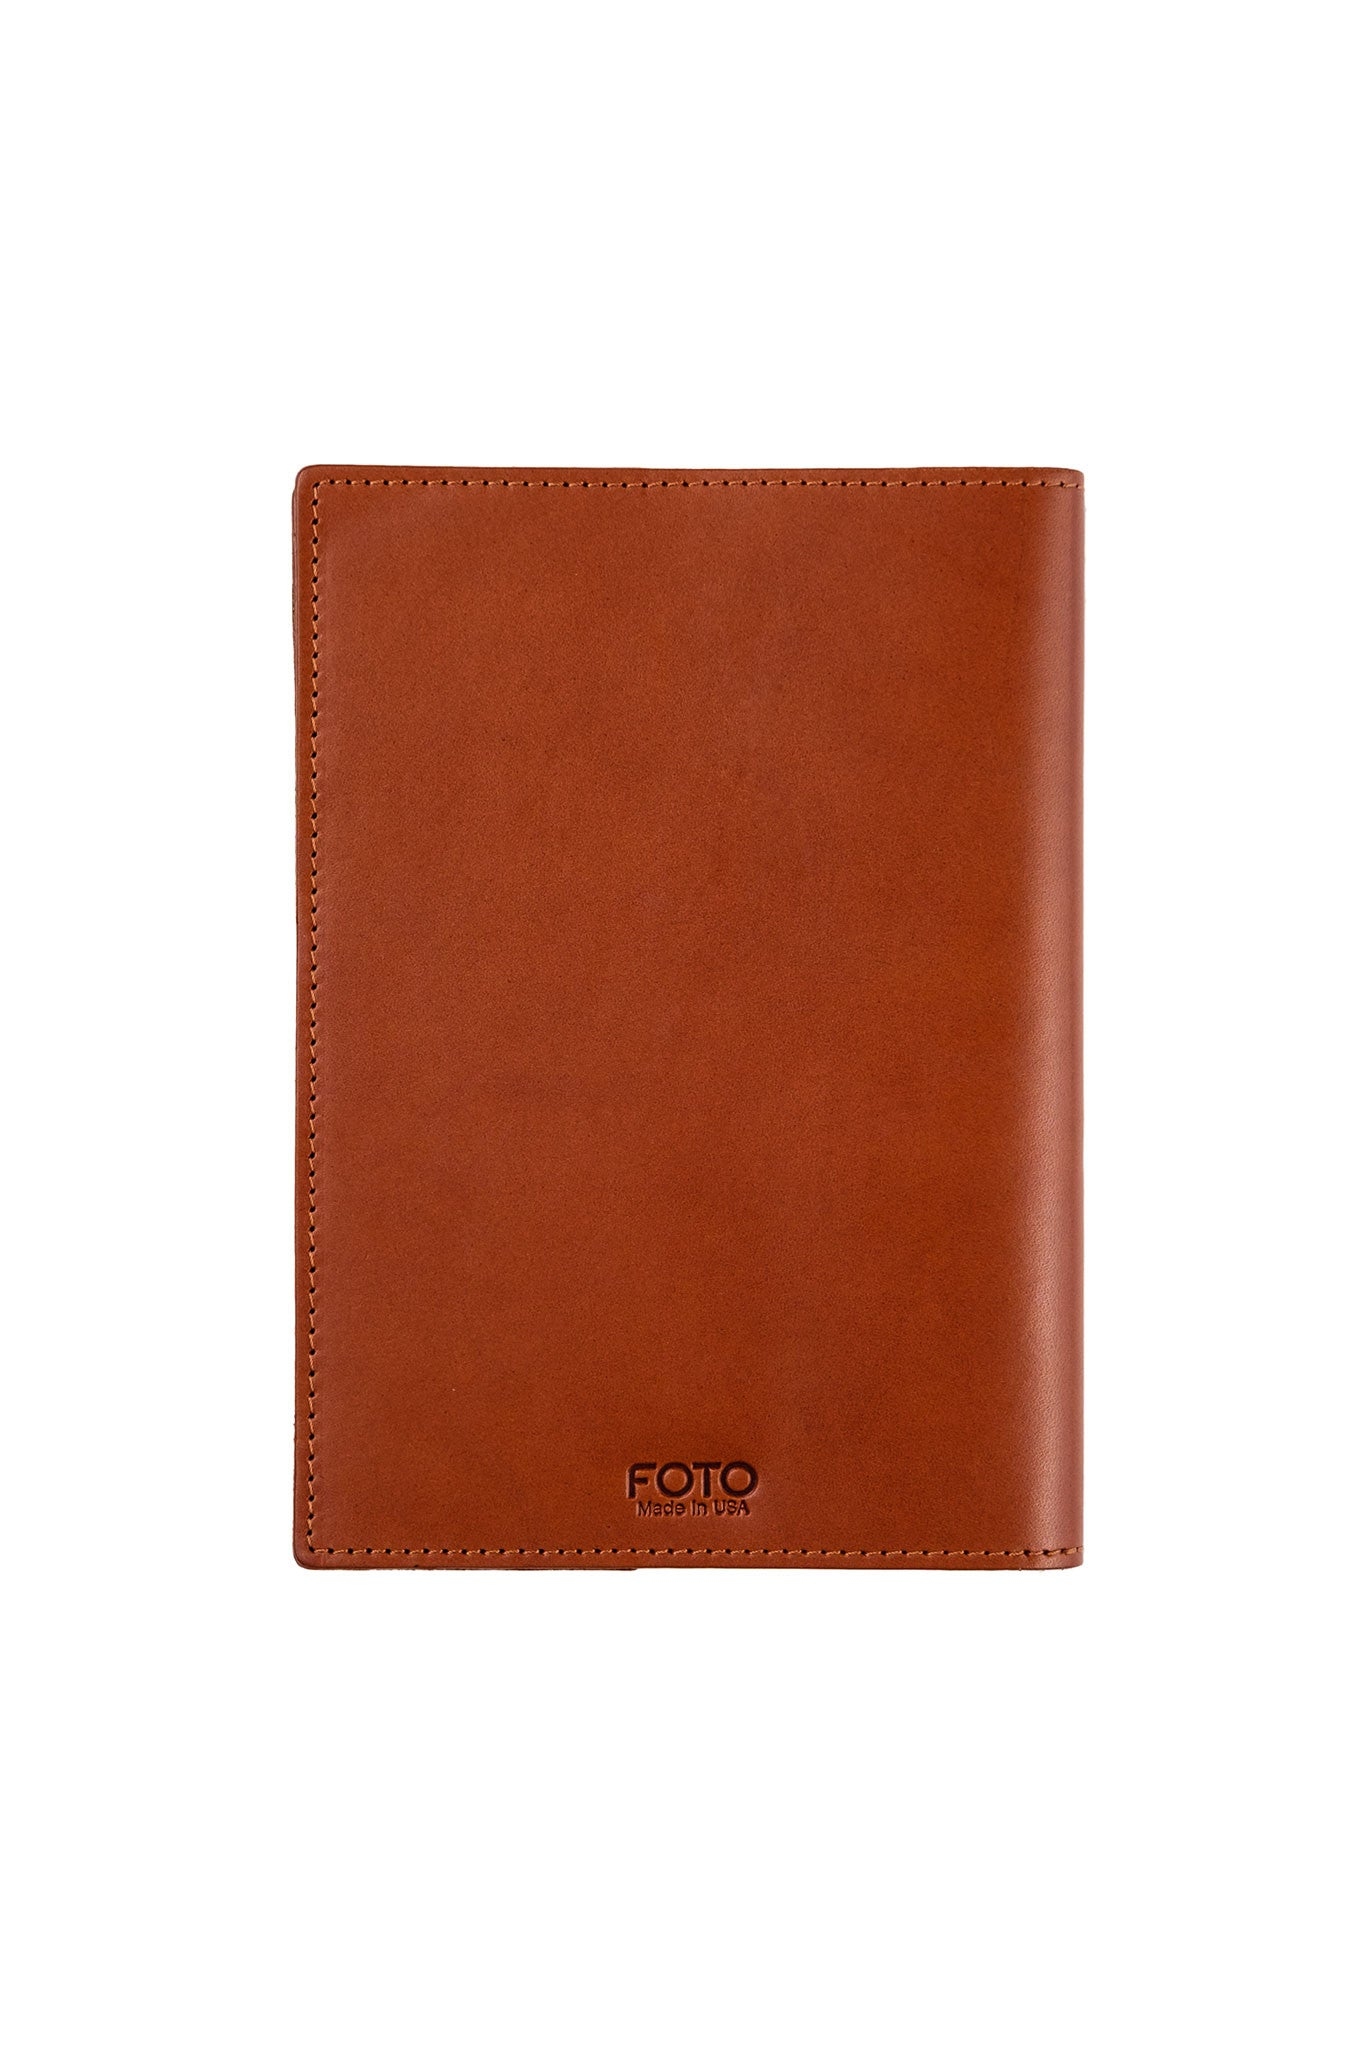 FOTO | Cognac Leather Journal for Photographers - refillable genuine leather journal cover can be personalized with gold foil initials, a monogram or business logo making it the perfect personalized gift.